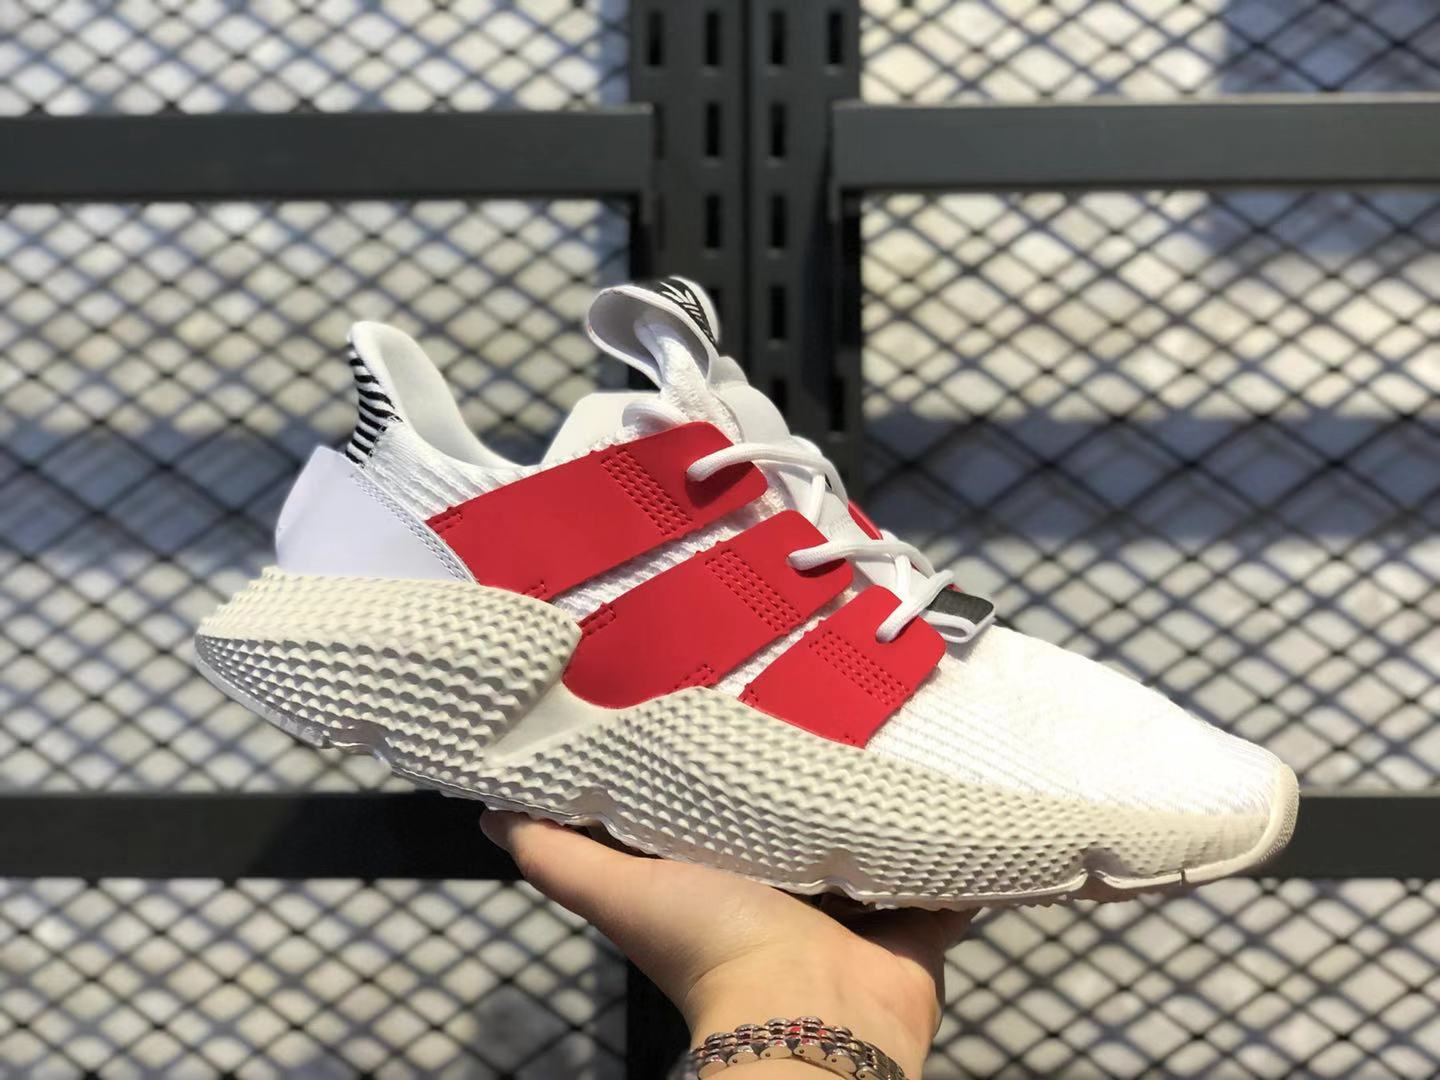 Adidas Originals Prophere Cloud White/Gym Red Top Shoes For Sale FU9263